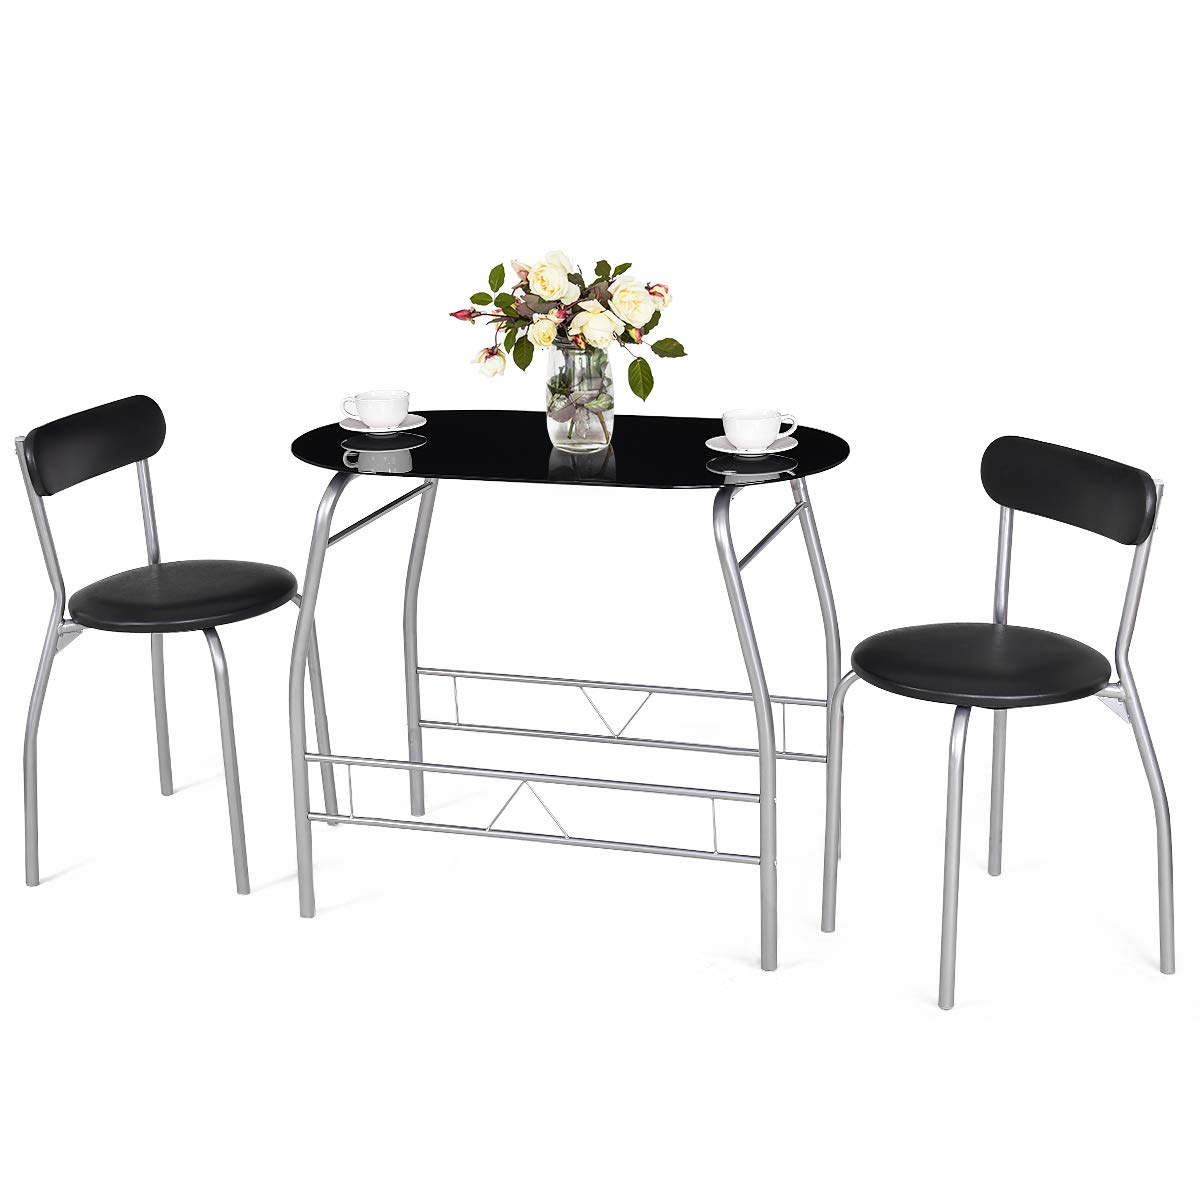 Tangkula 3 Piece Dining Set Modern Metal Frame Glass Top Table and 2 Chairs Set Home Kitchen Bistro Pub Breakfast Furniture, Black and Silver by Tangkula